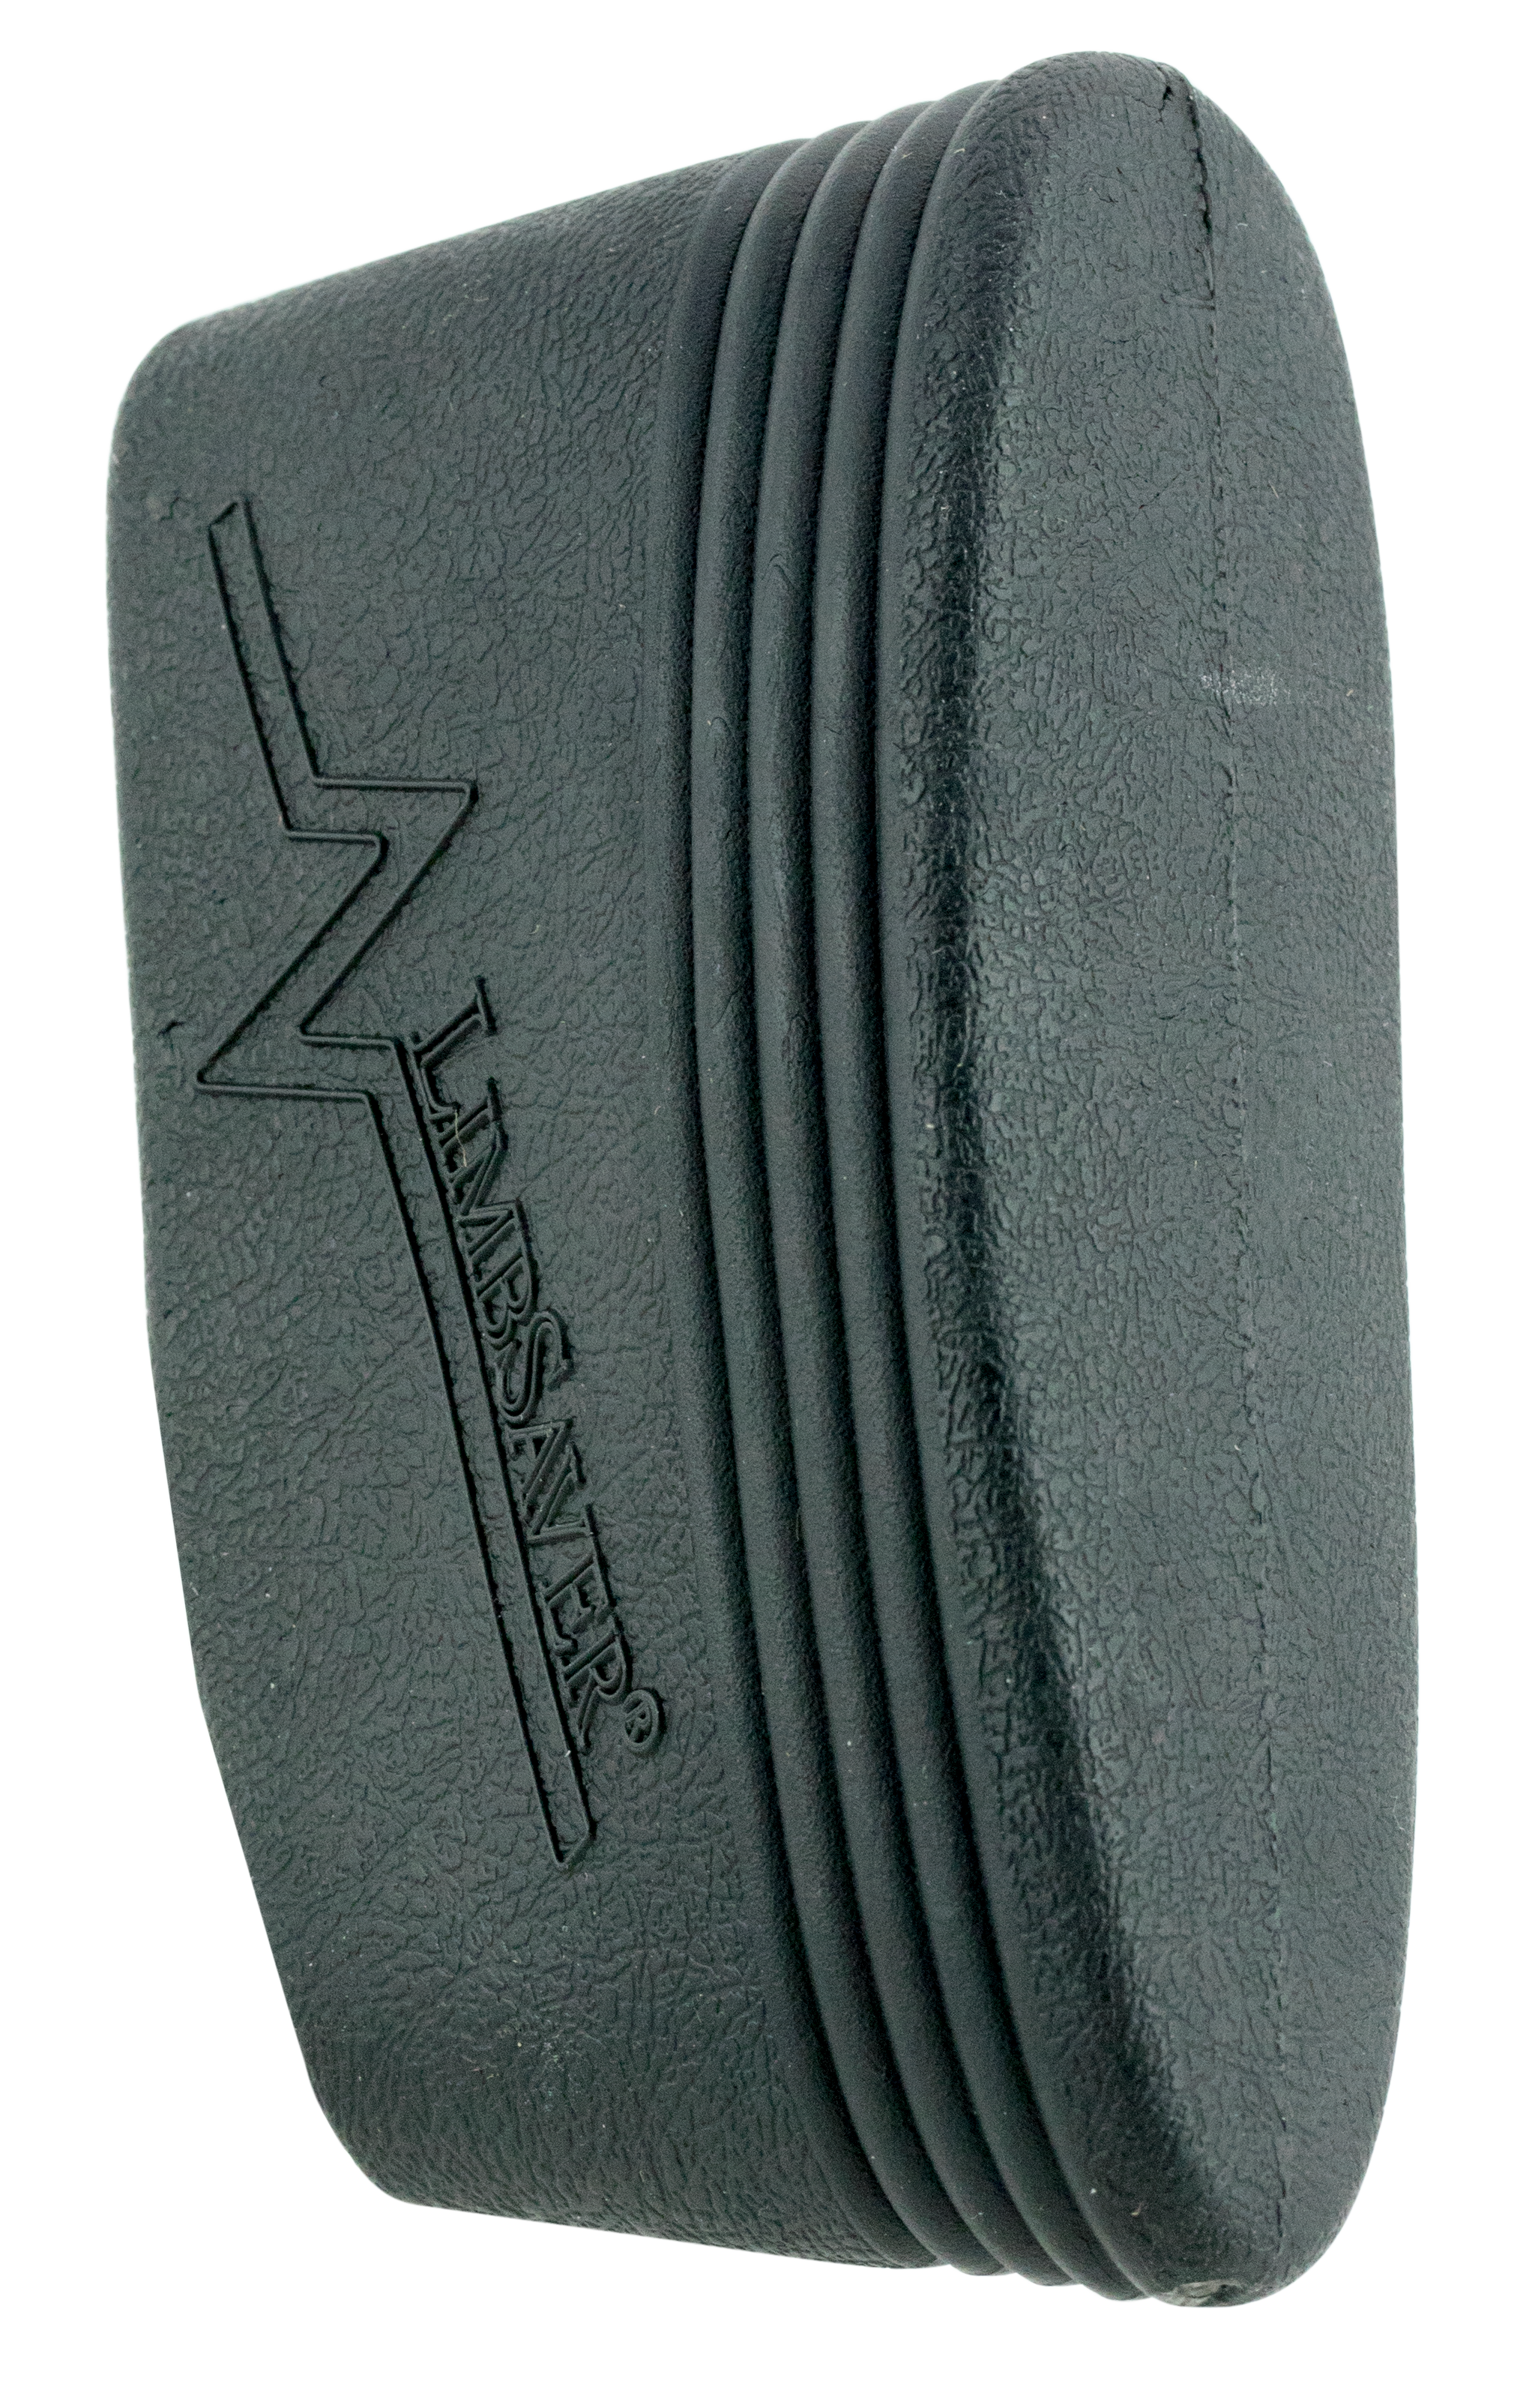 Limbsaver 10545 Slip On Recoil Pad Small - Med Black Rubber